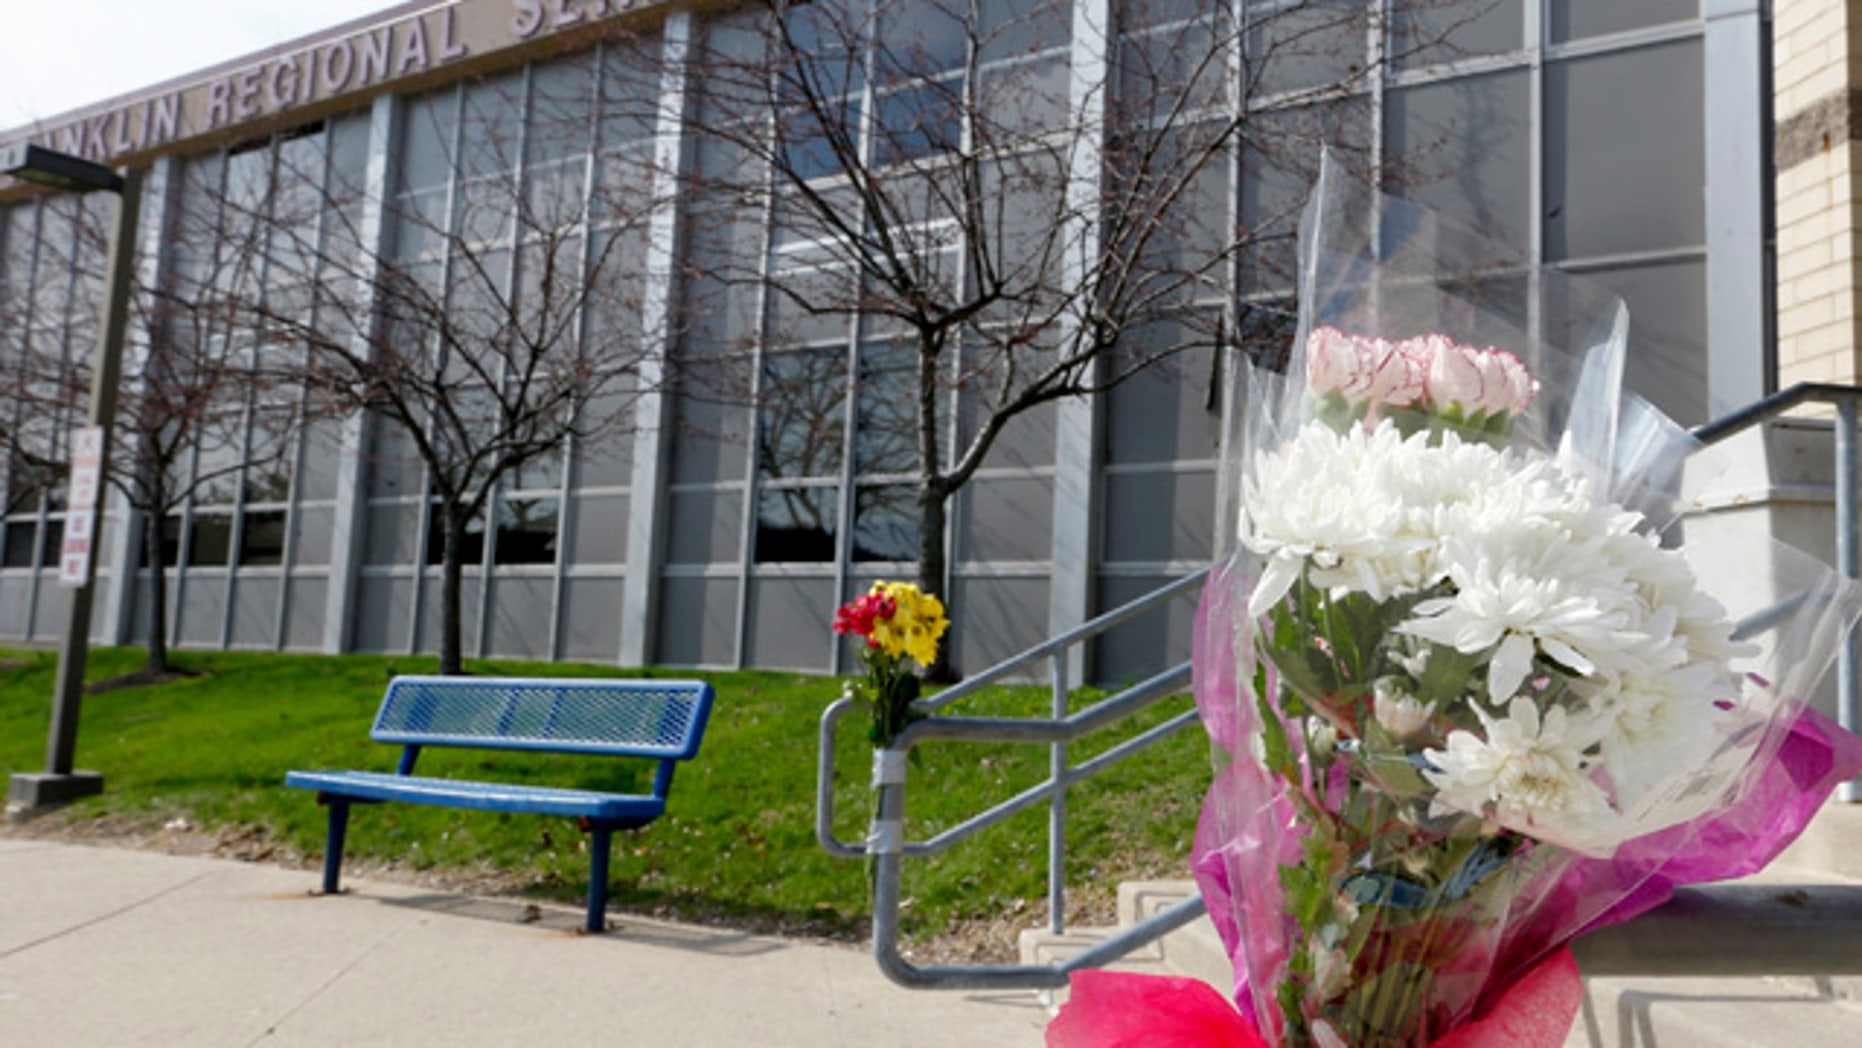 April 10, 2014: A bouquet of flowers is taped to a stairway rail near the closed entrance to Franklin Regional High School in Murrysville, Pa. (AP Photo/Keith Srakocic)